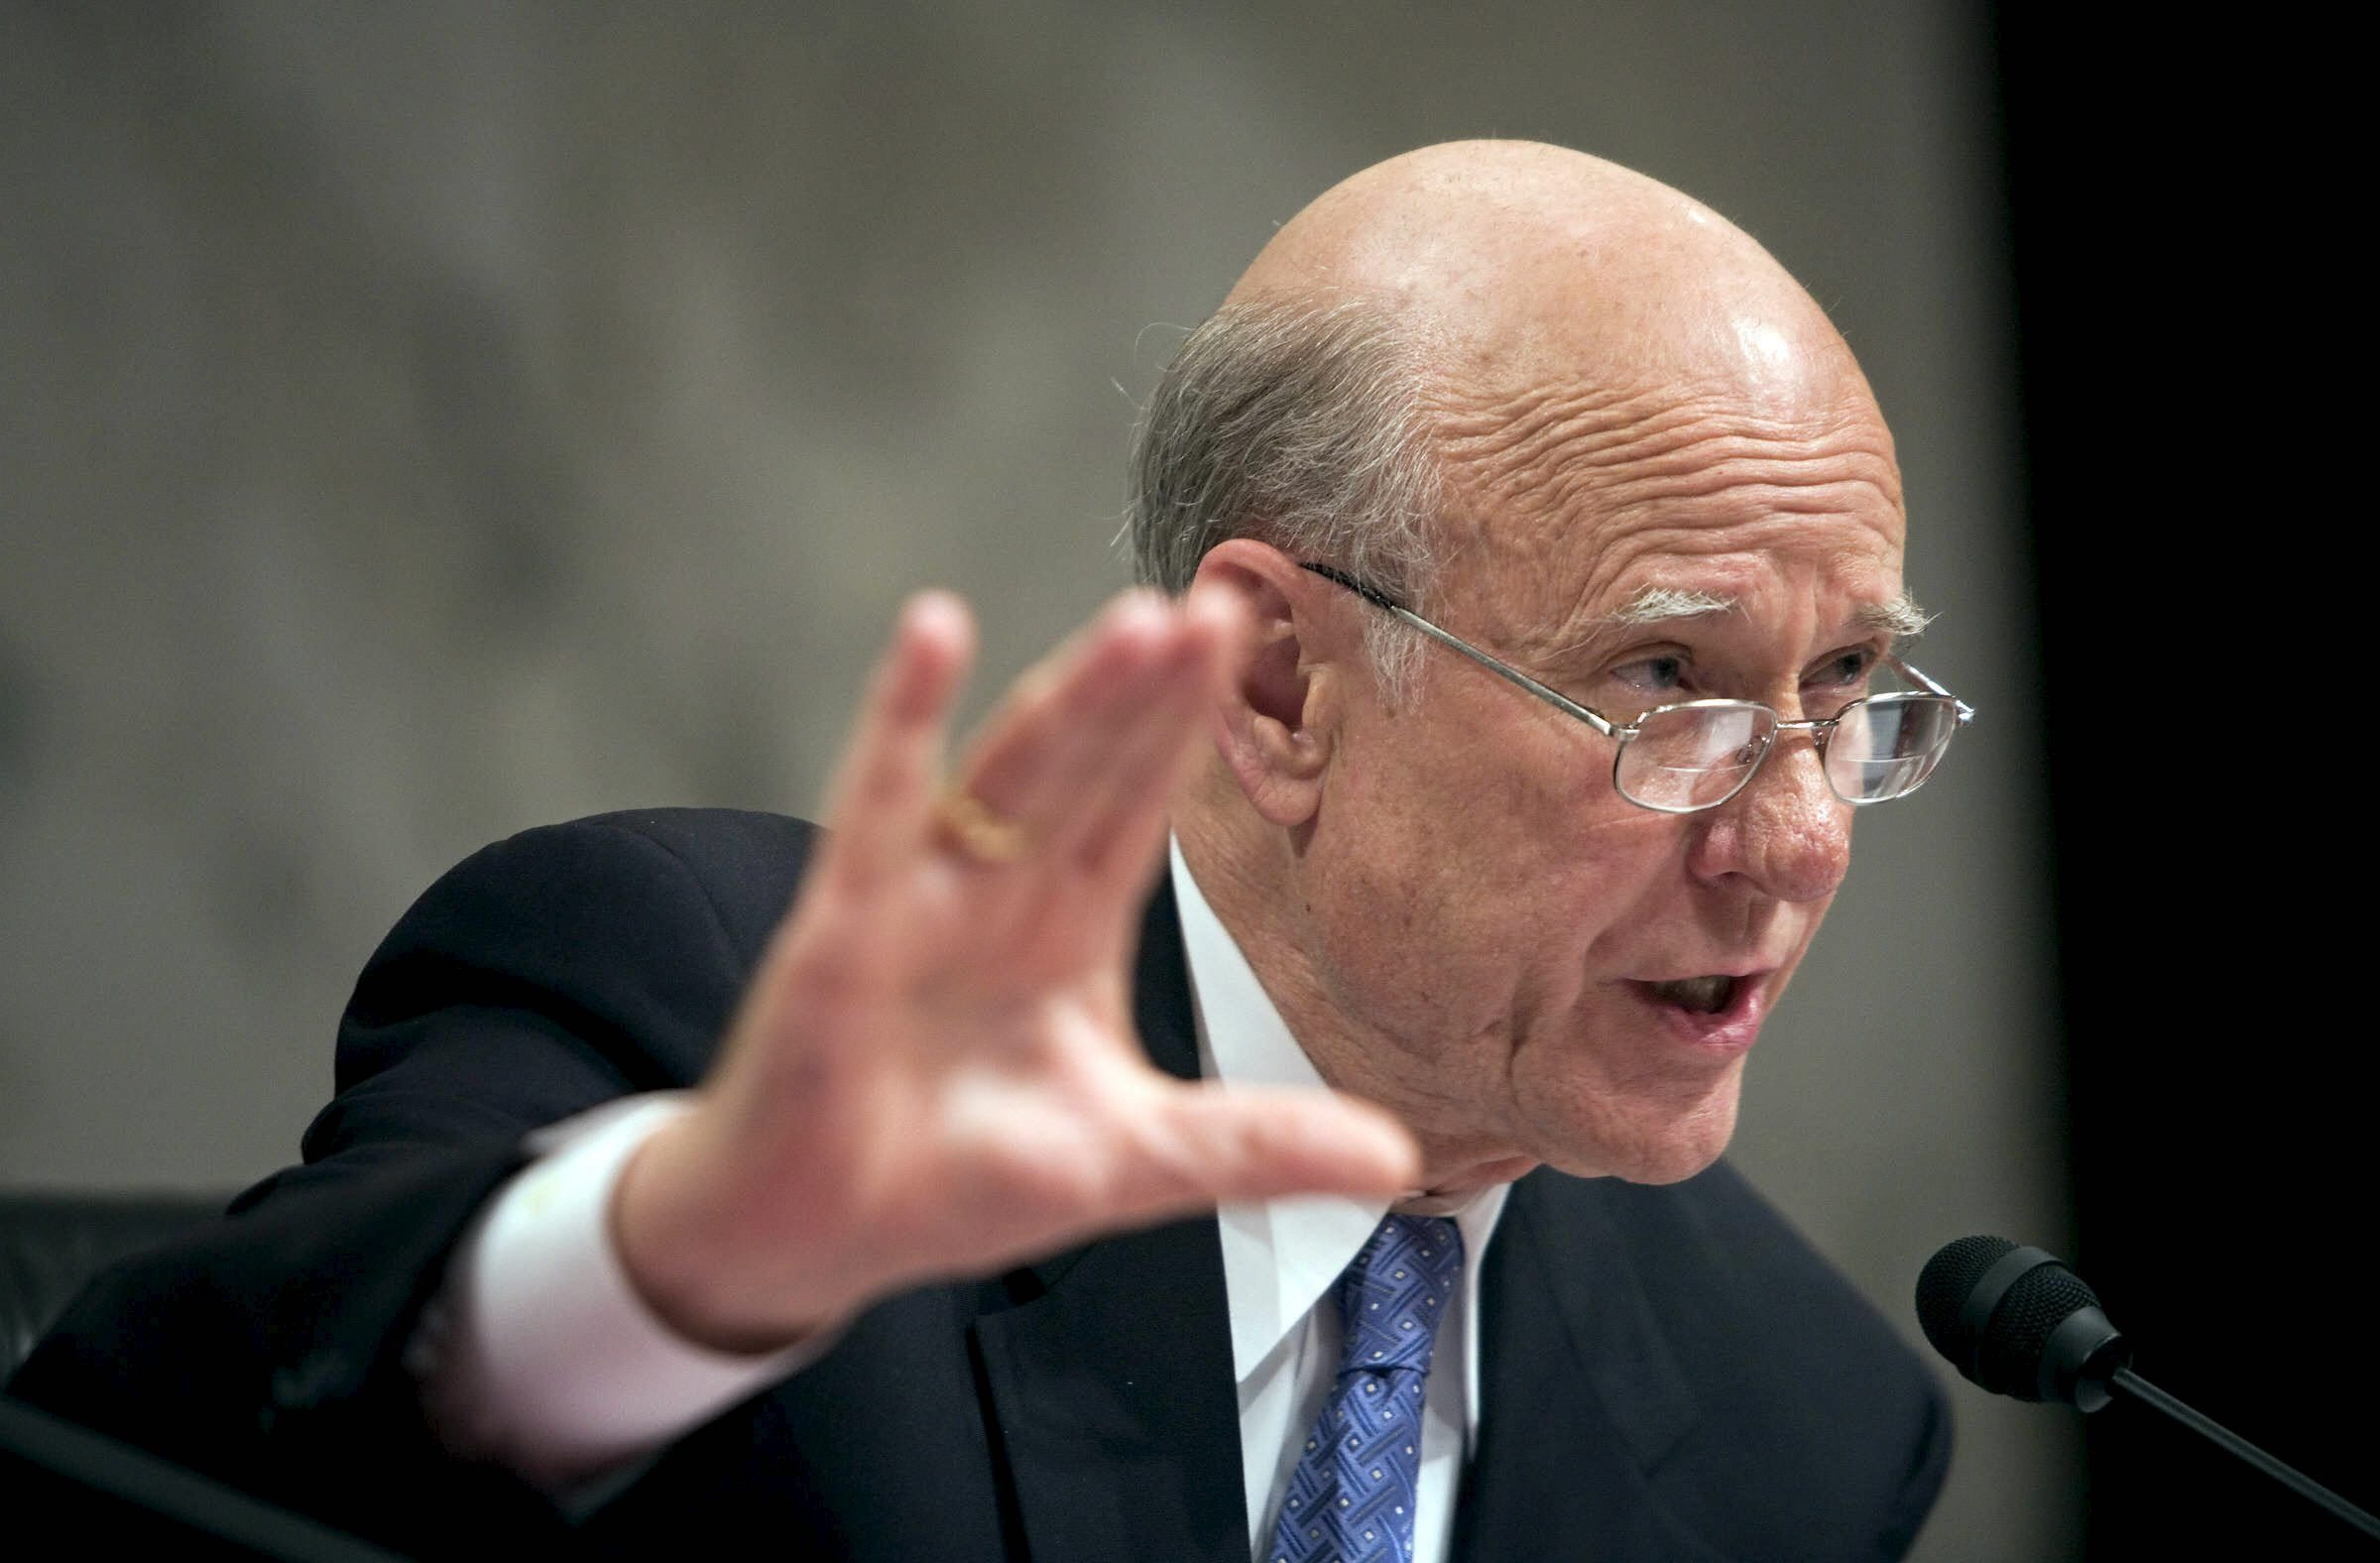 Senate Bill Introduced To Block IRS From Collecting Social Security Numbers From Donors